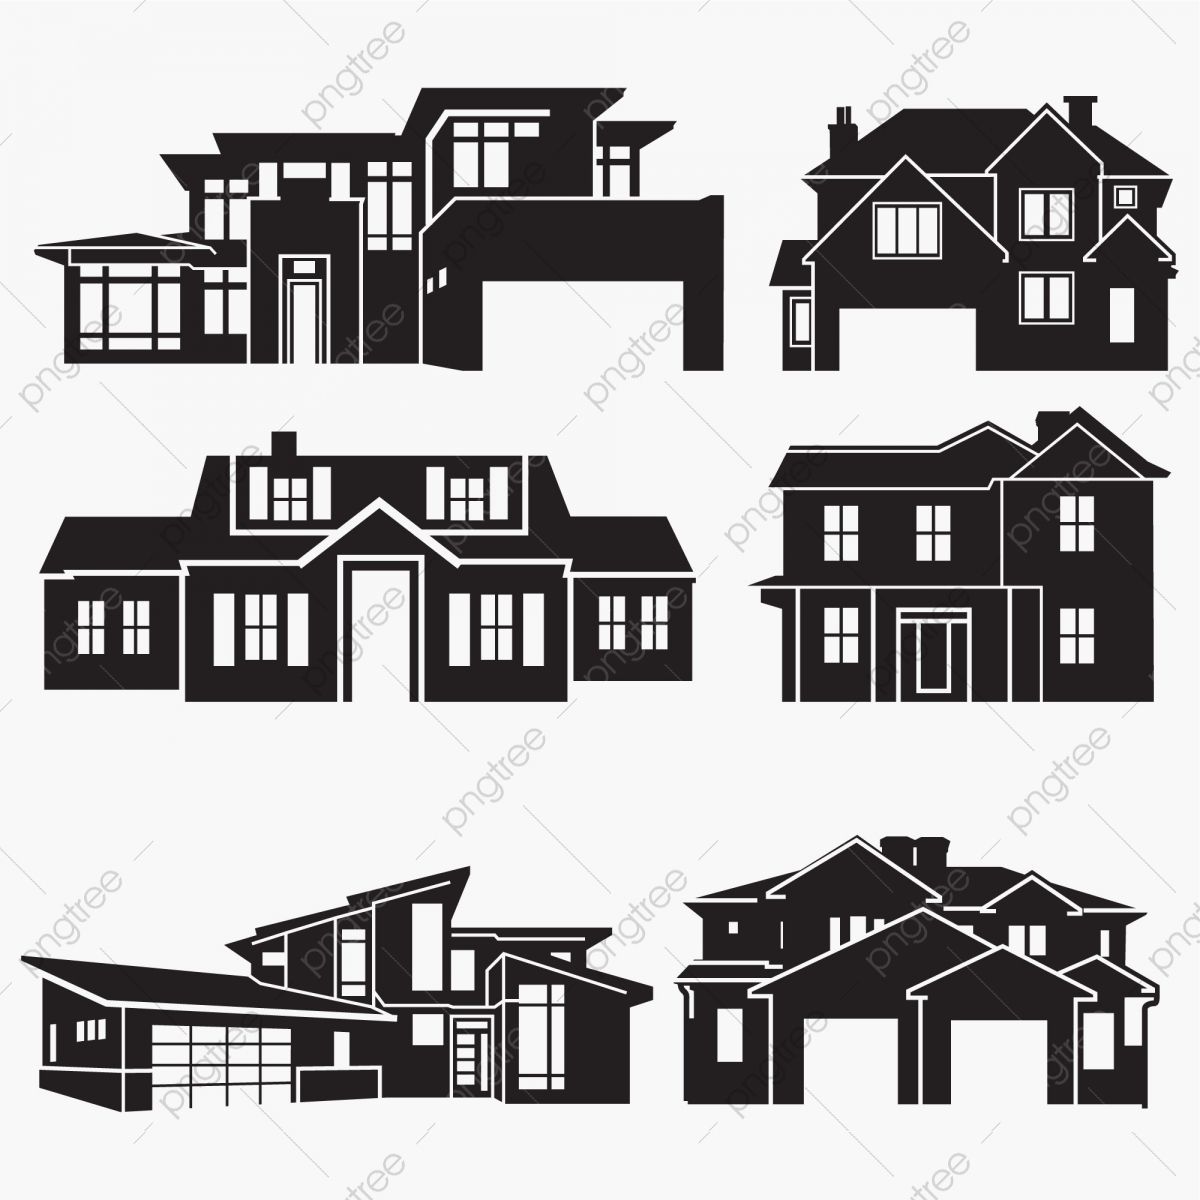 House Silhouettes House Apartment Architecture Png And Vector With Transparent Background For Free Download In 2021 House Silhouette Building Silhouette Silhouette Architecture